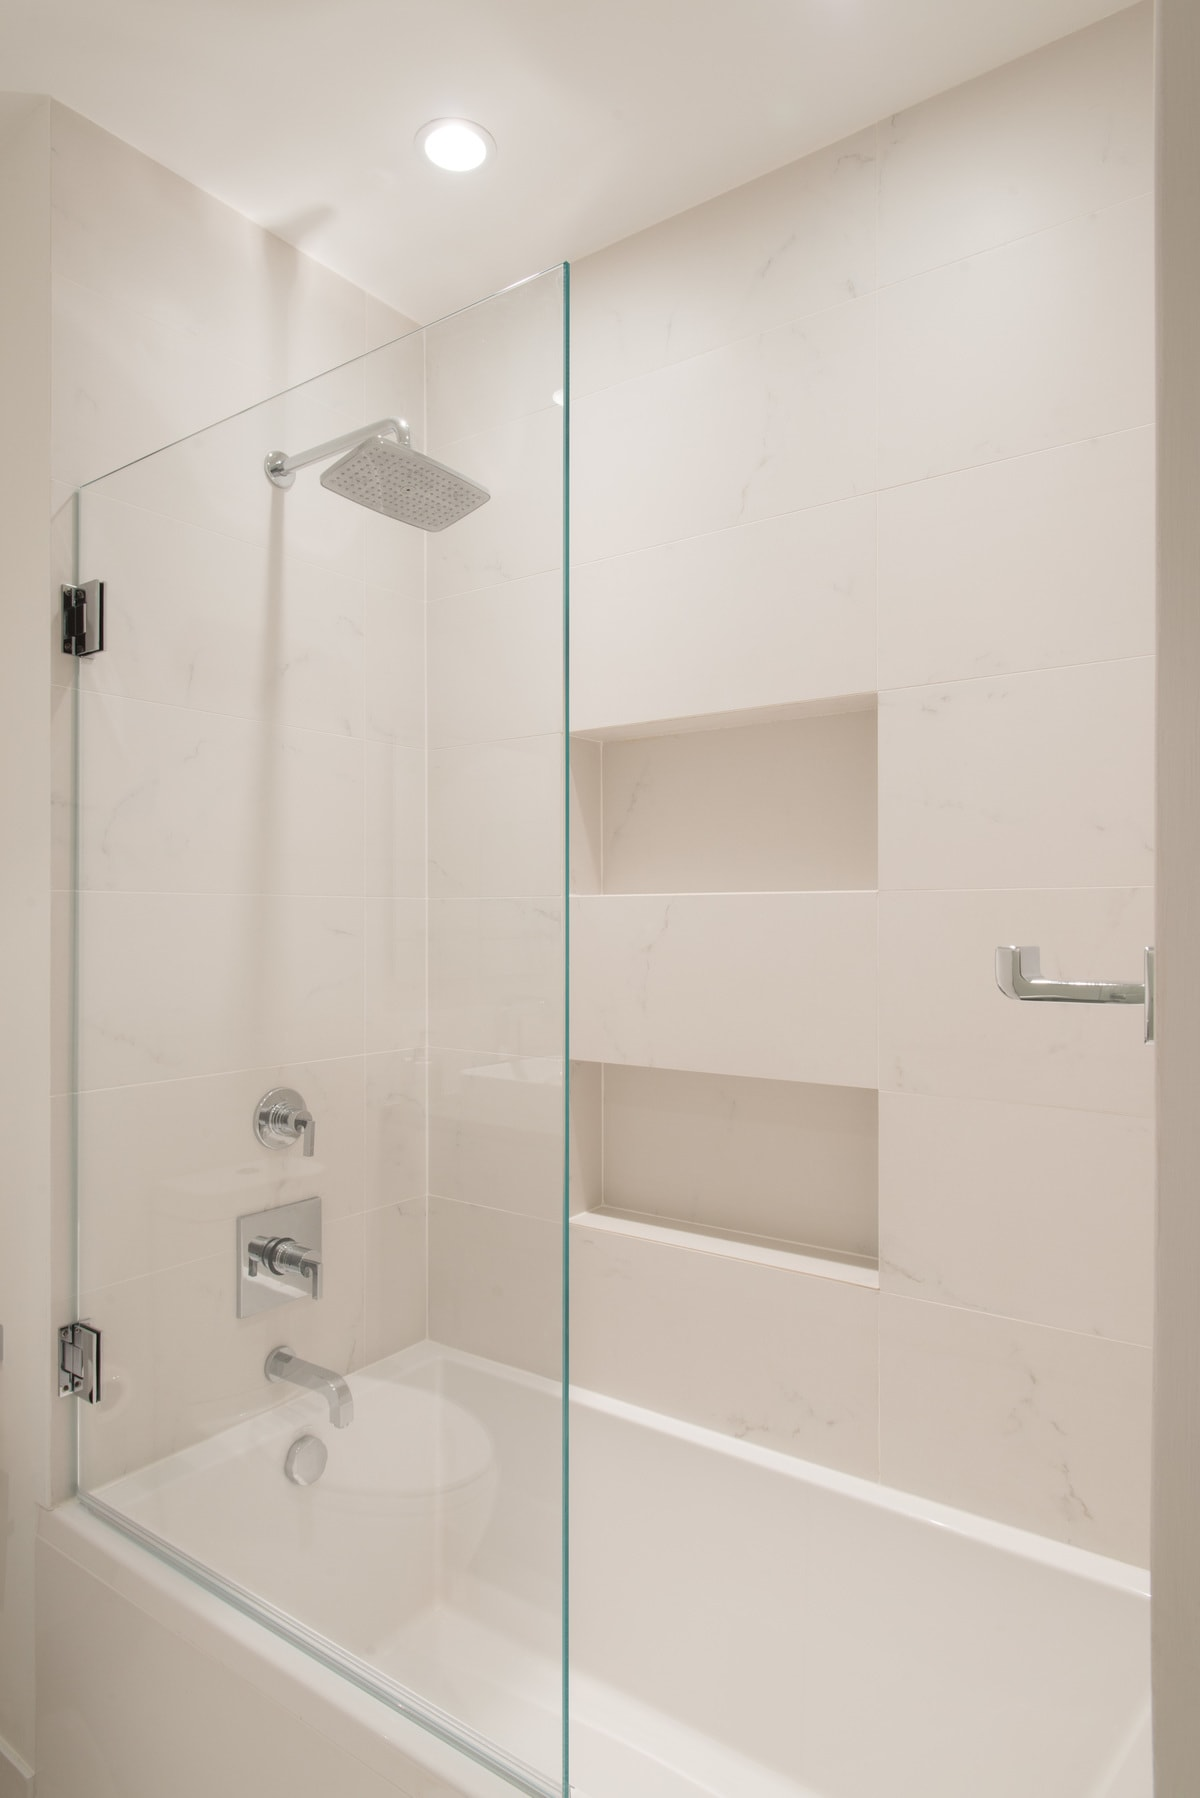 shower/tub combo in white with glass wall